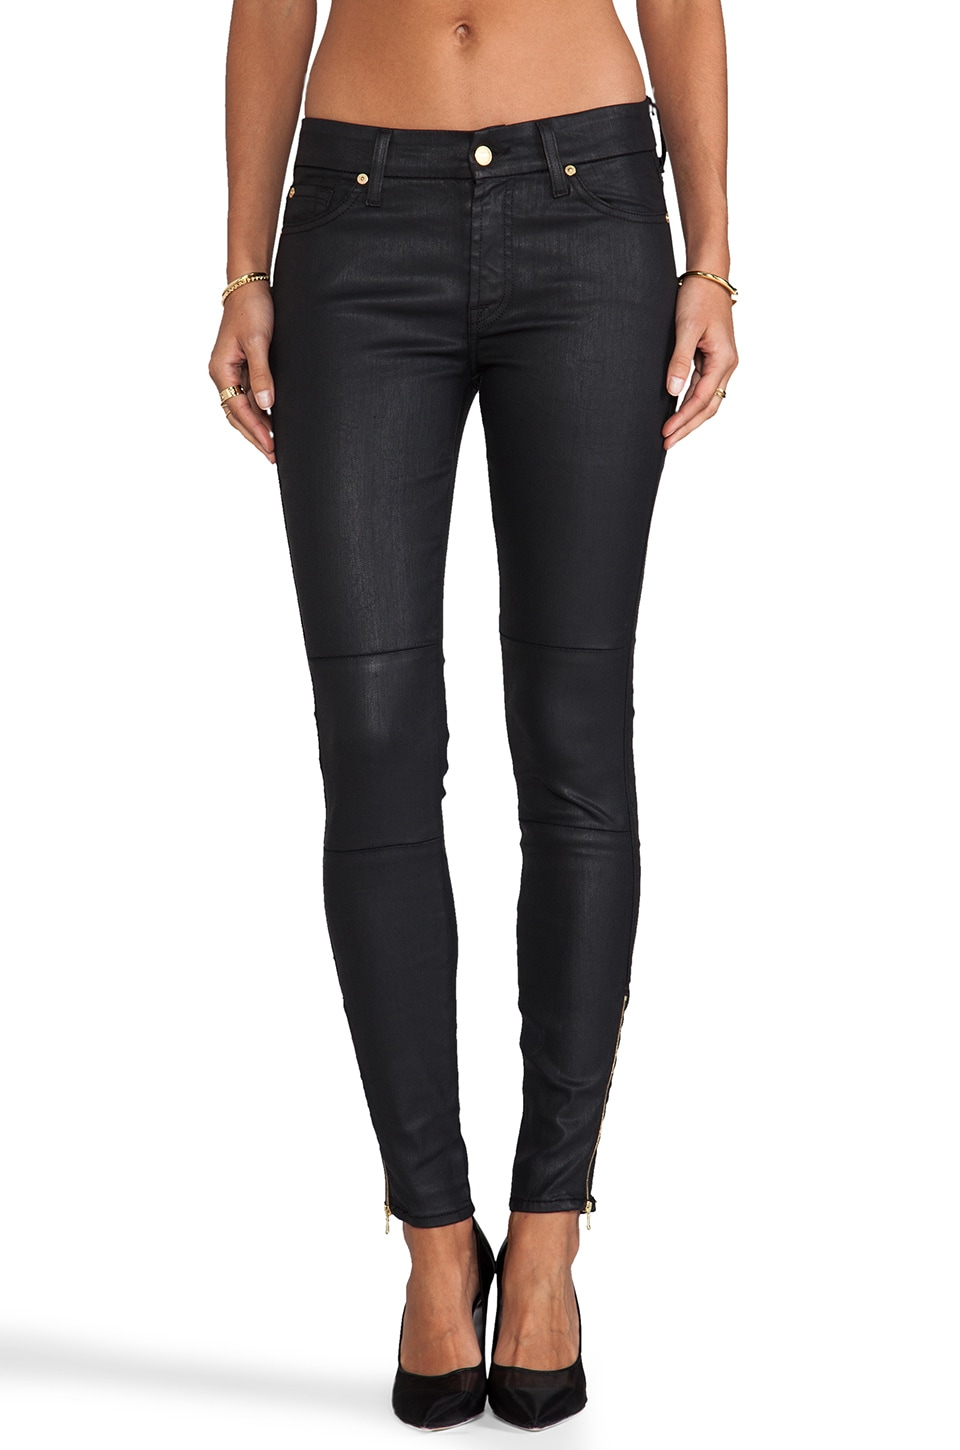 7 For All Mankind The Seamed Skinny w/ Ankle Zips in Black